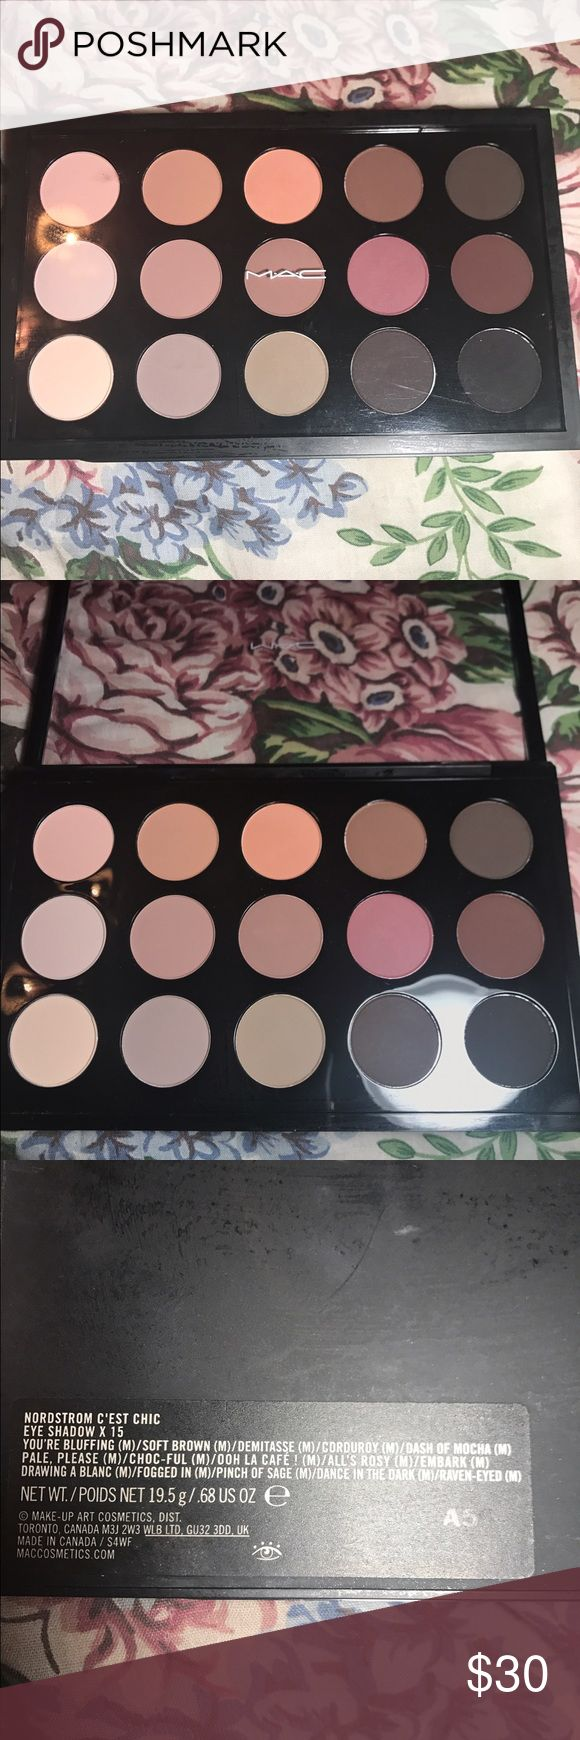 MAC Eyeshadow Palette SWATCHED. Nordstrom Exclusive. Beautiful colors! Last picture is not this palette, it's just for price verification. MAC Cosmetics Makeup Eyeshadow